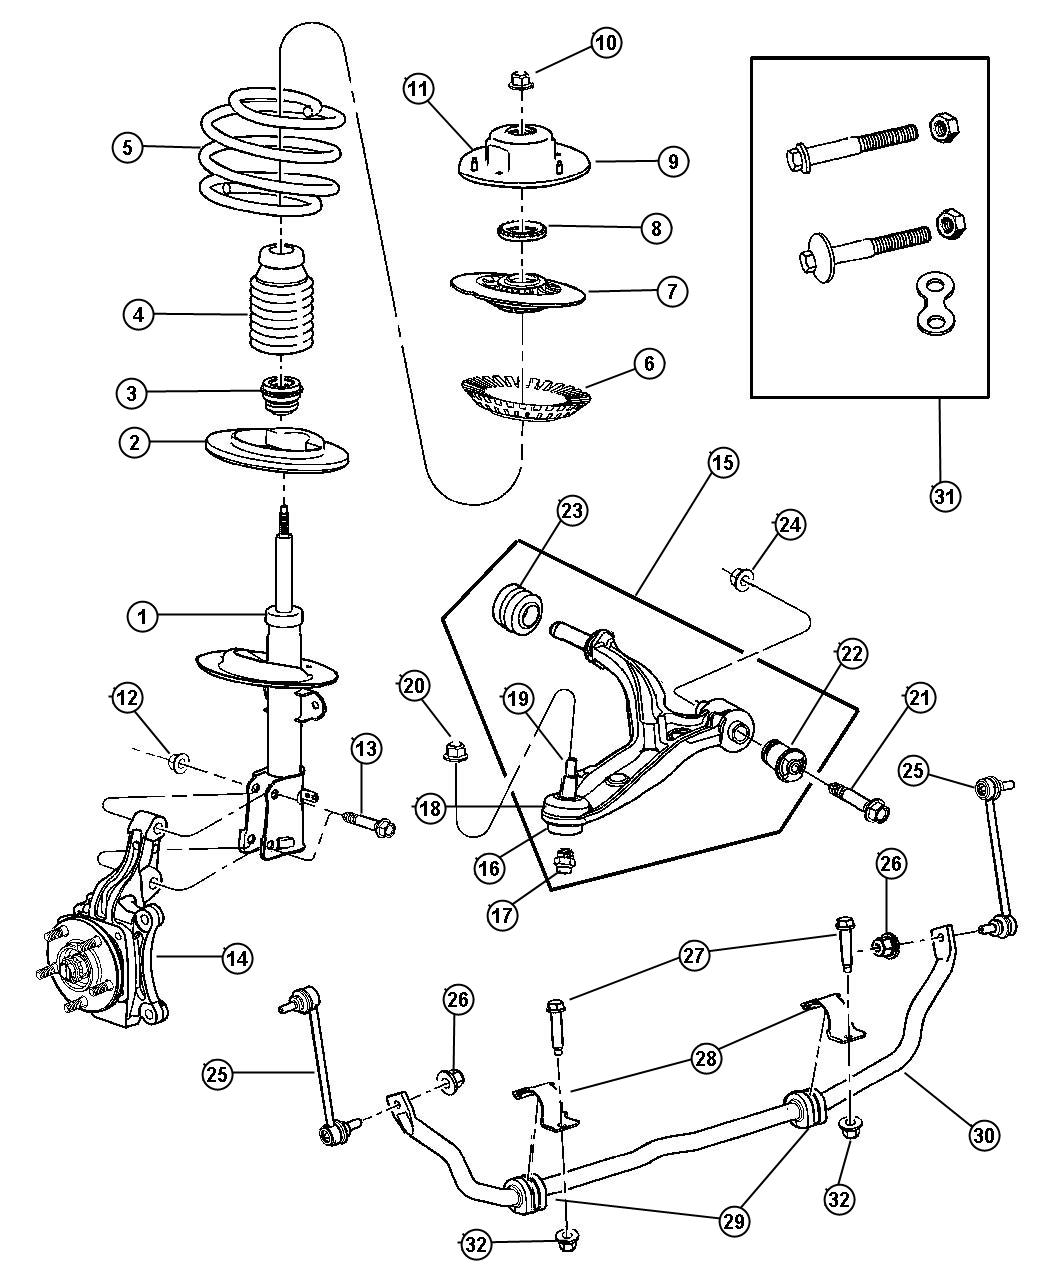 2000 buick lesabre parts diagram pull cord light switch suspension imageresizertool com